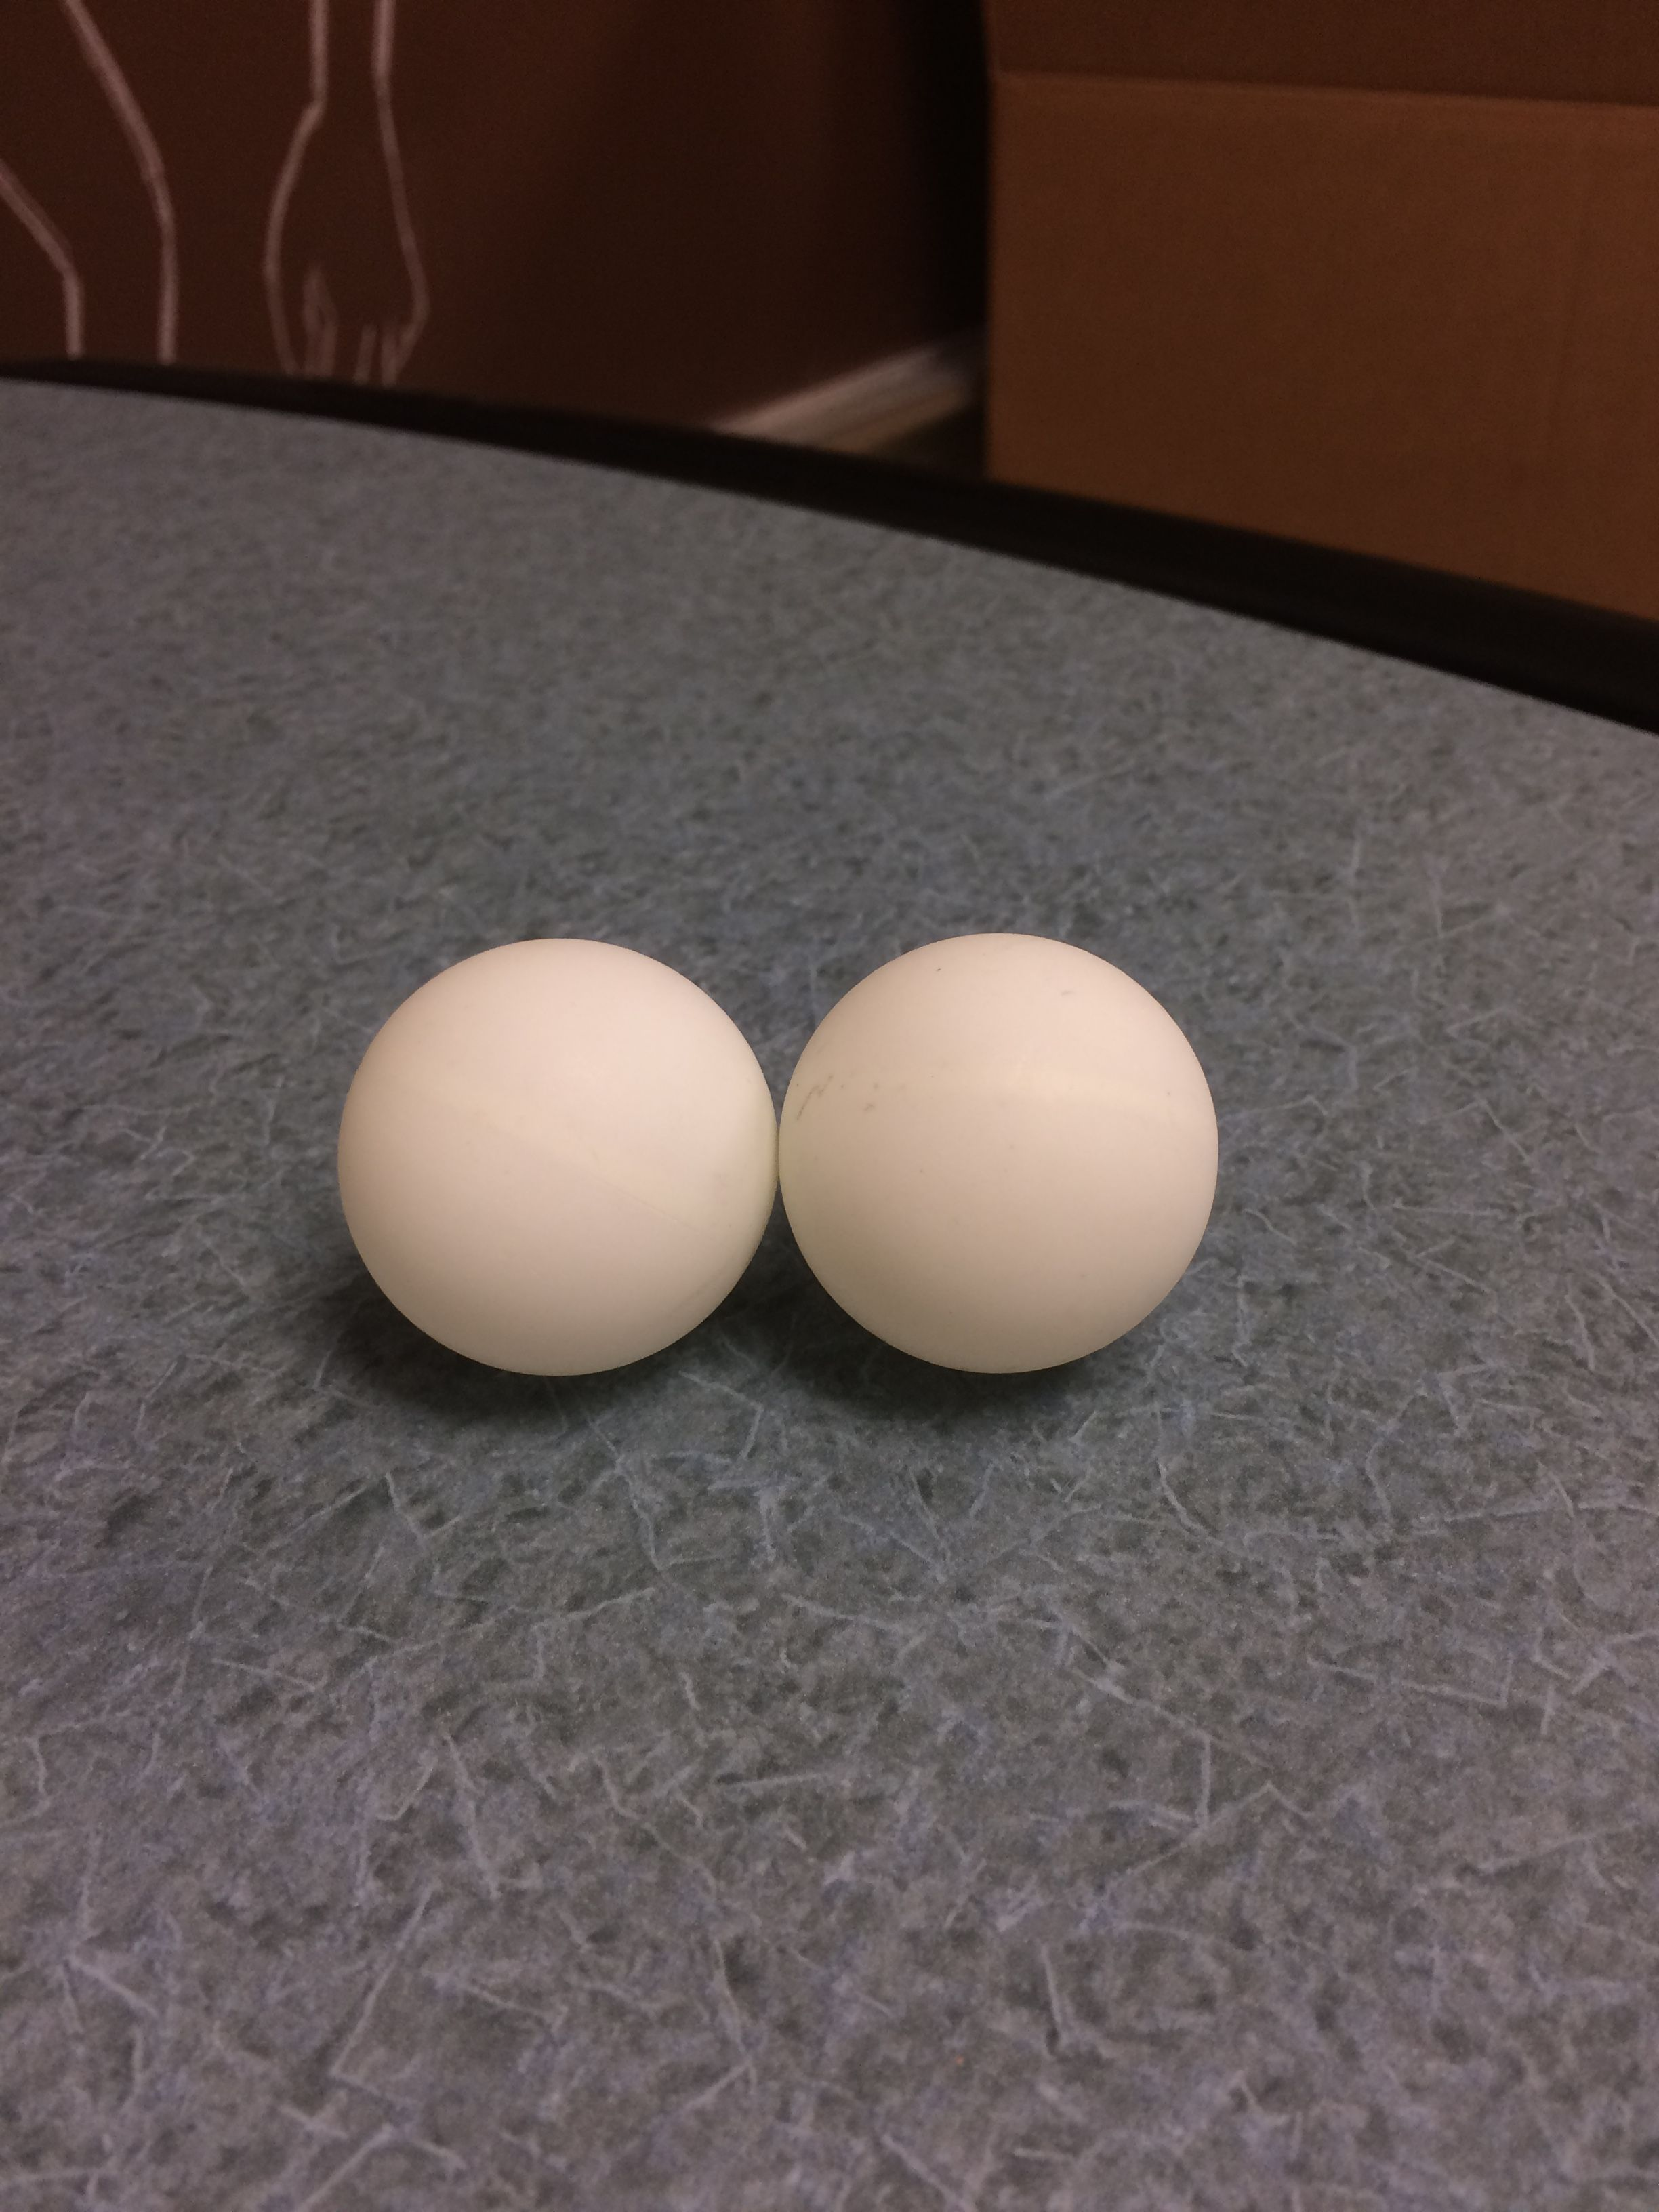 In This Picture The Balls Have Experienced An Inelastic